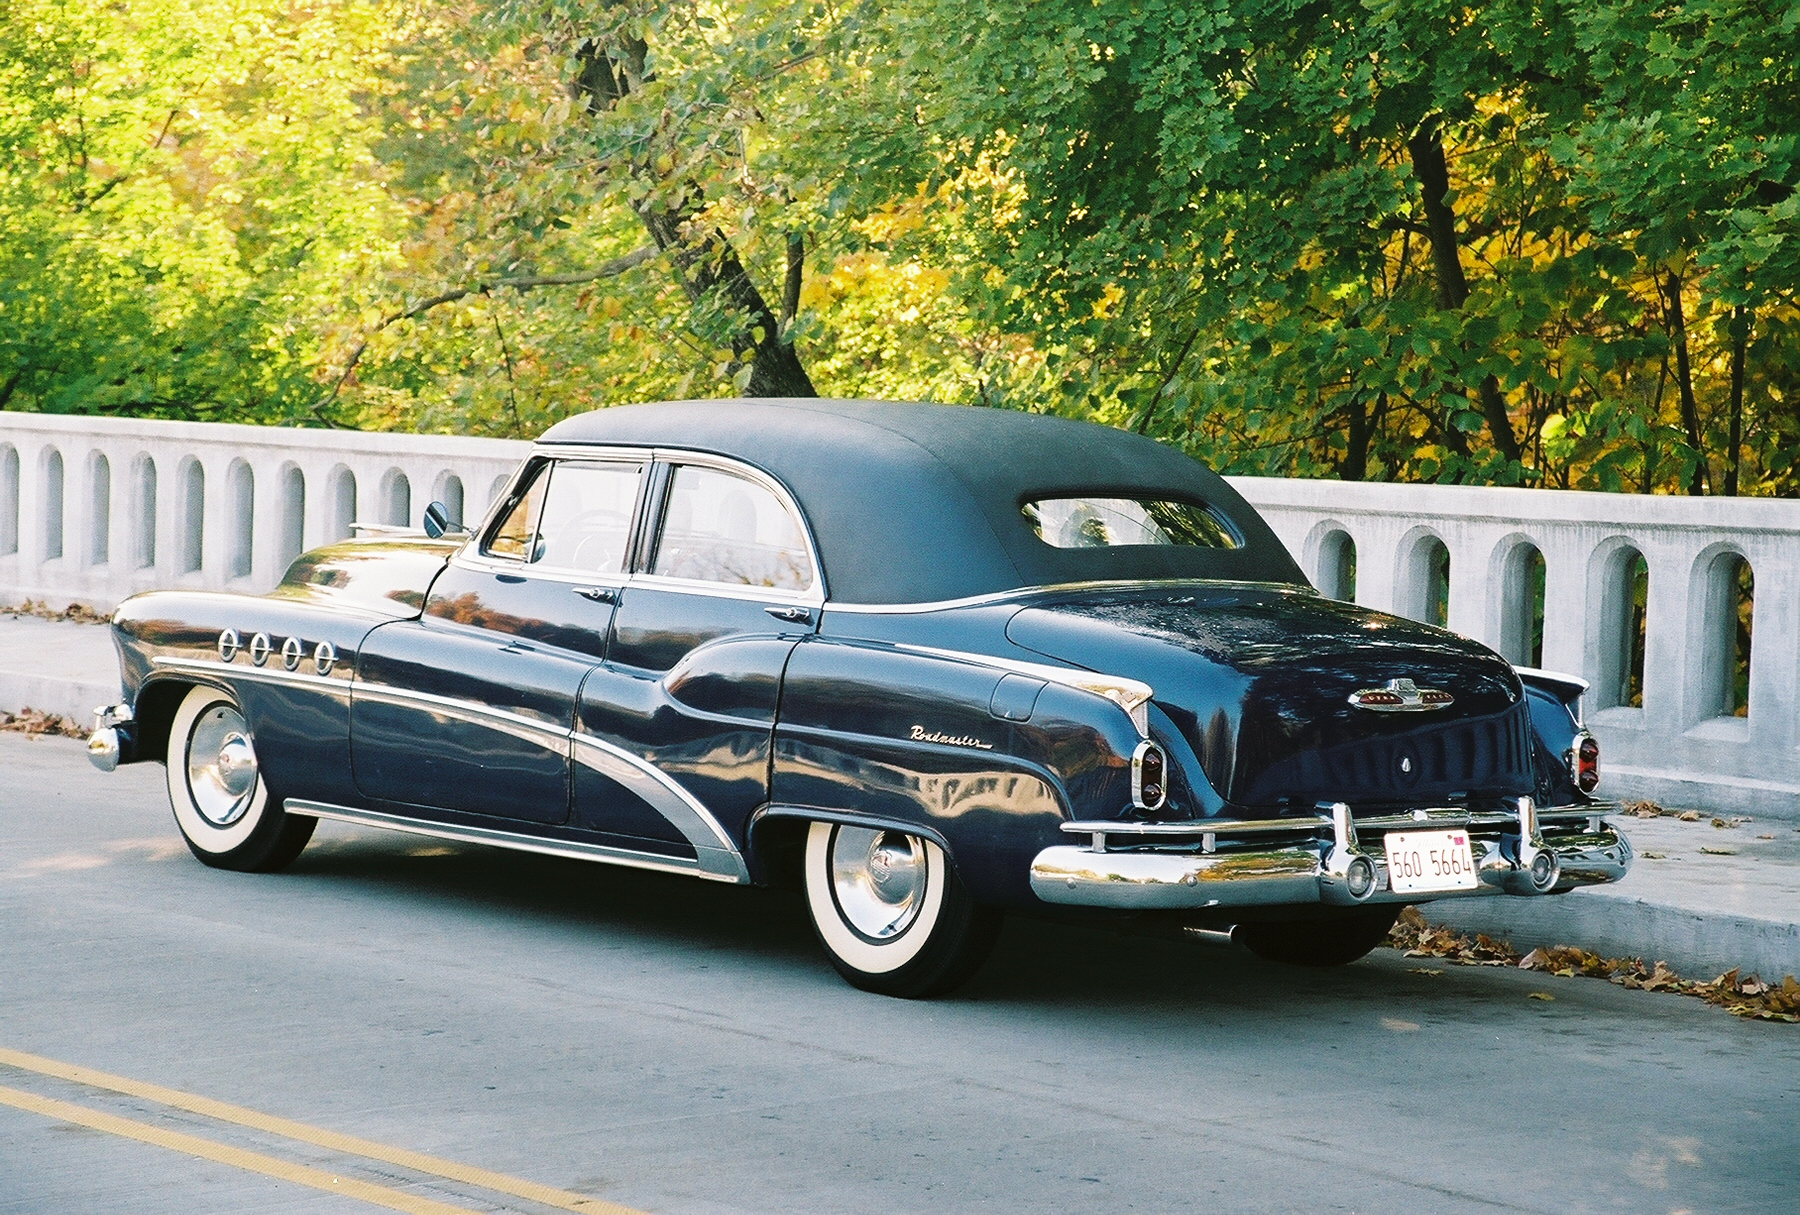 1954 Buick Harlow Curtice Limo